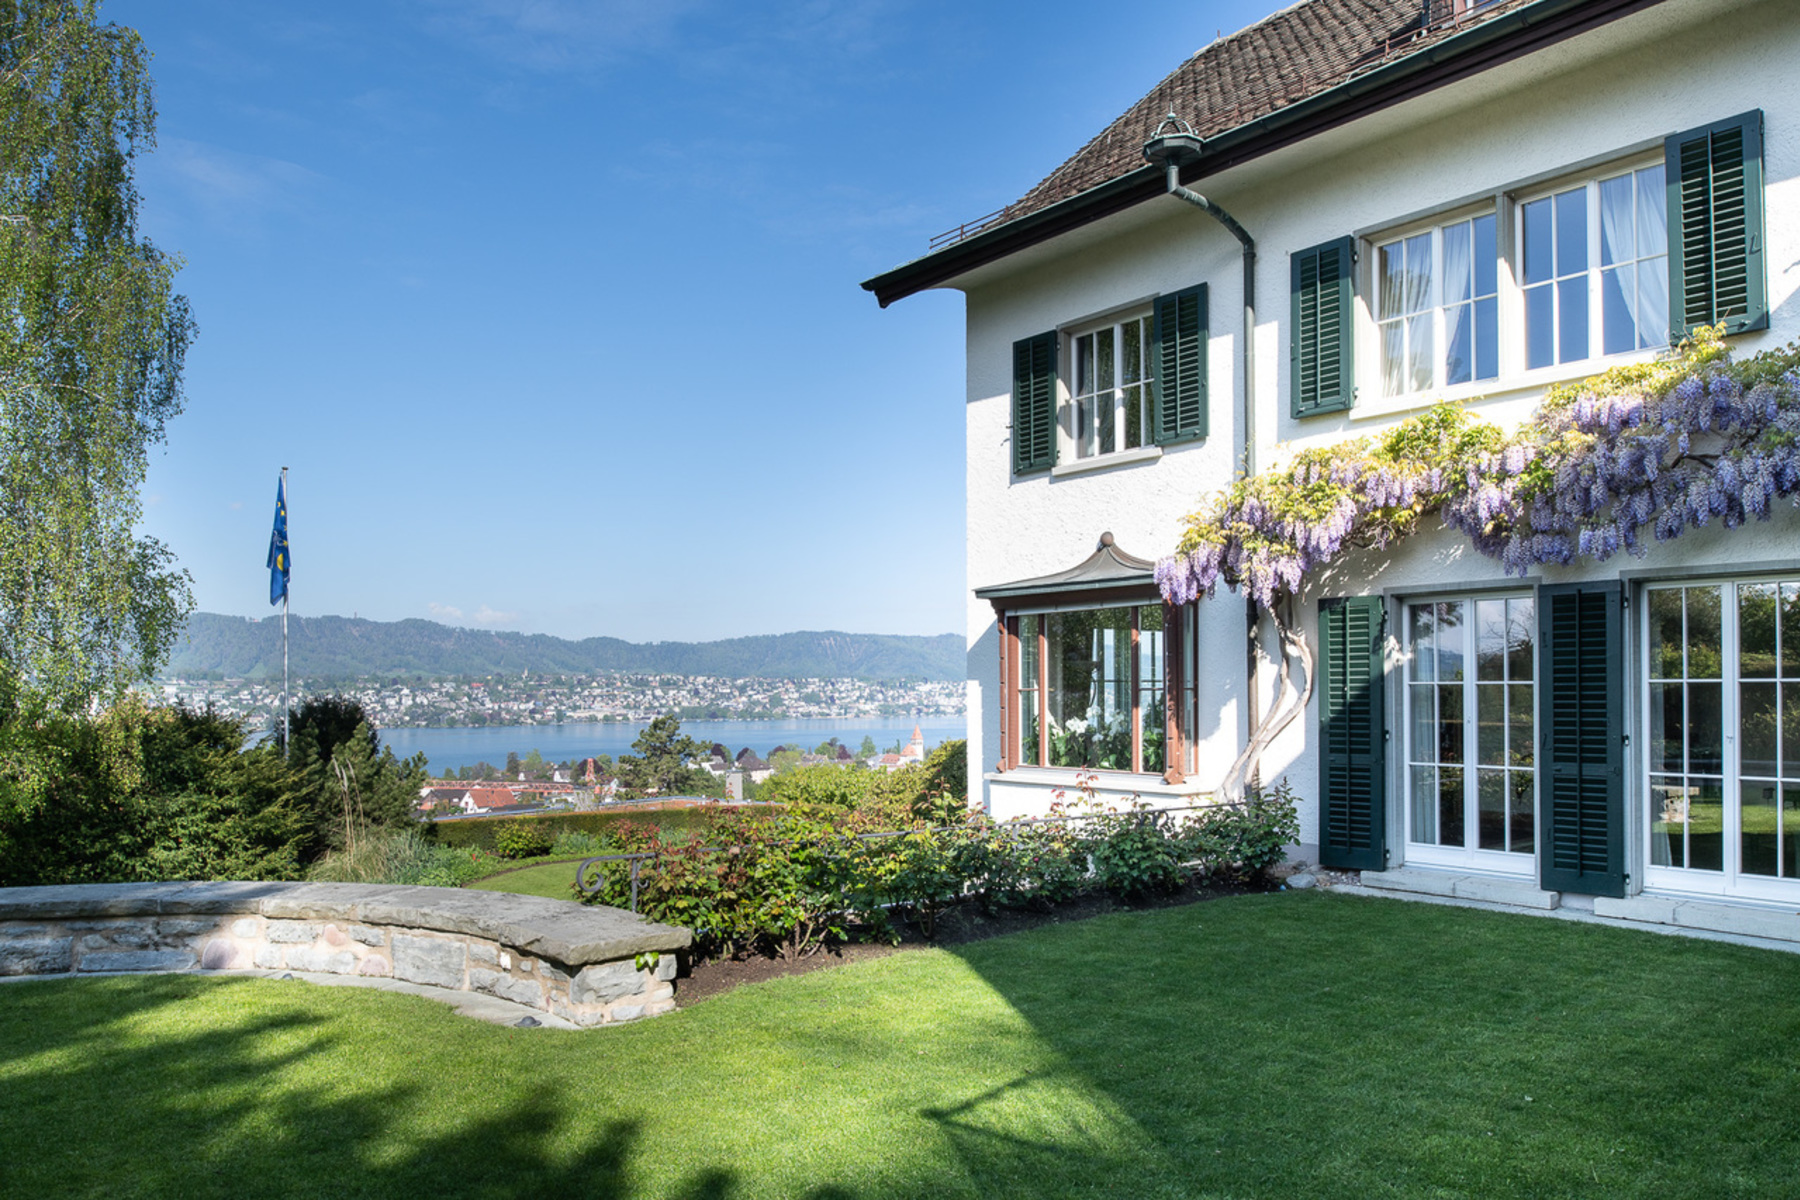 Additional photo for property listing at Country house villa with lake view an erhöhter Lage Other Zurich, Zurich 8700 Suiza